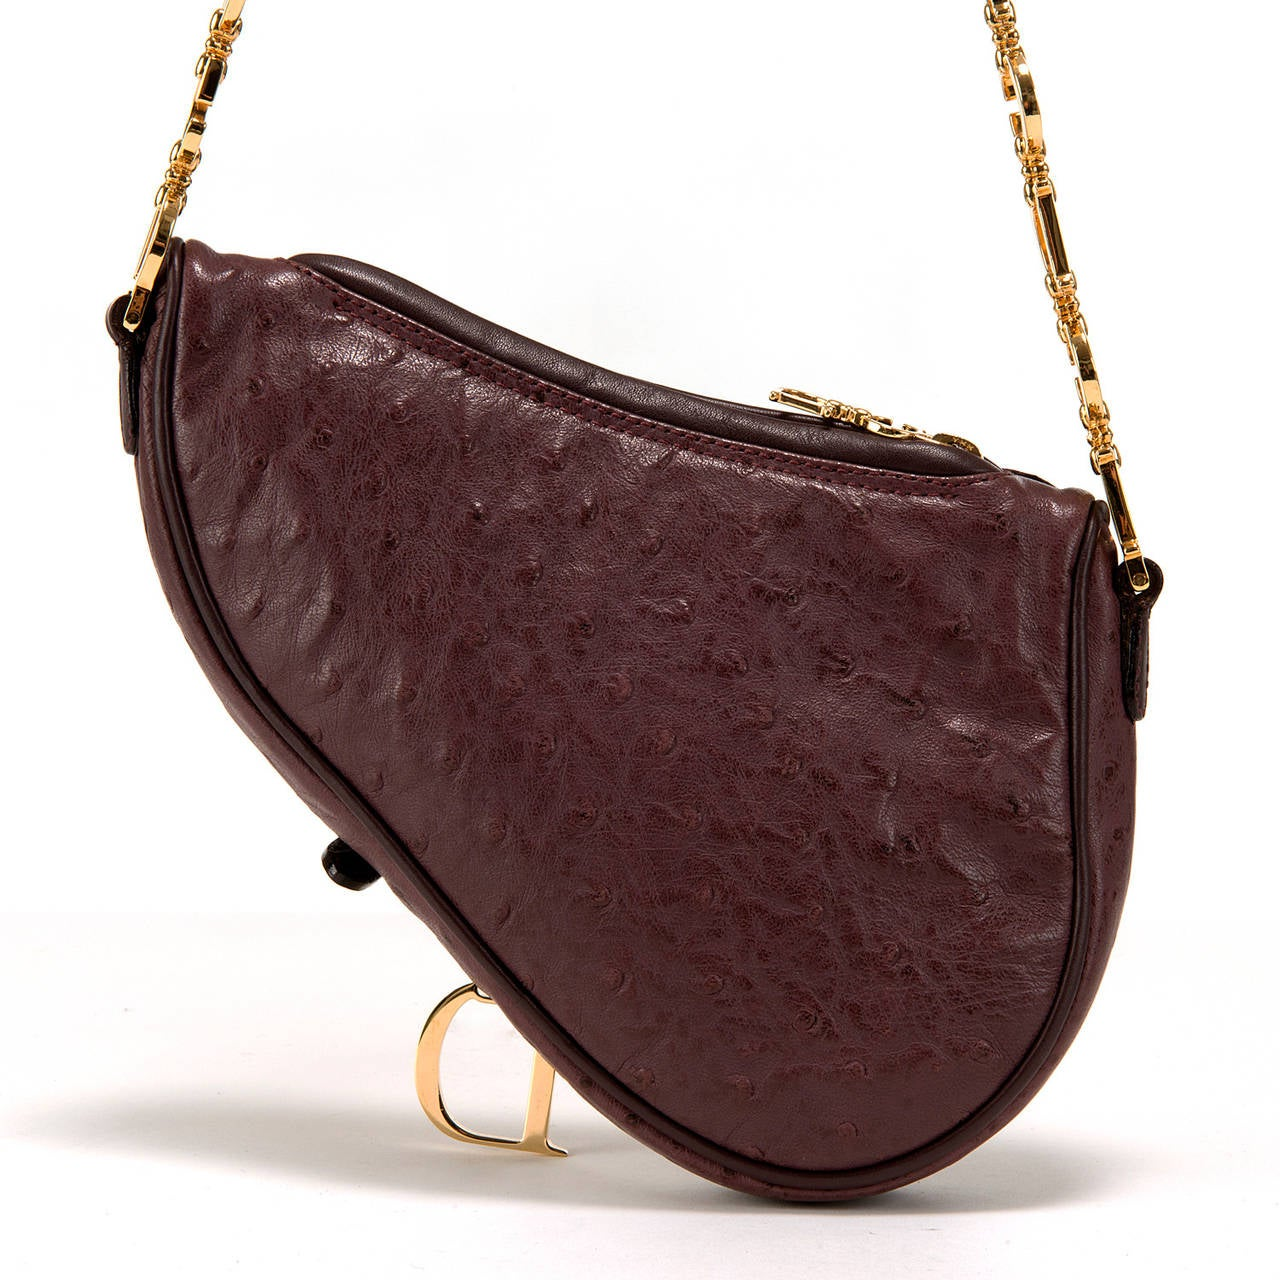 WOW ! Christian Dior Aubergine 'Saddle' Bag in Ostrich with Gold Logo Hardware 2